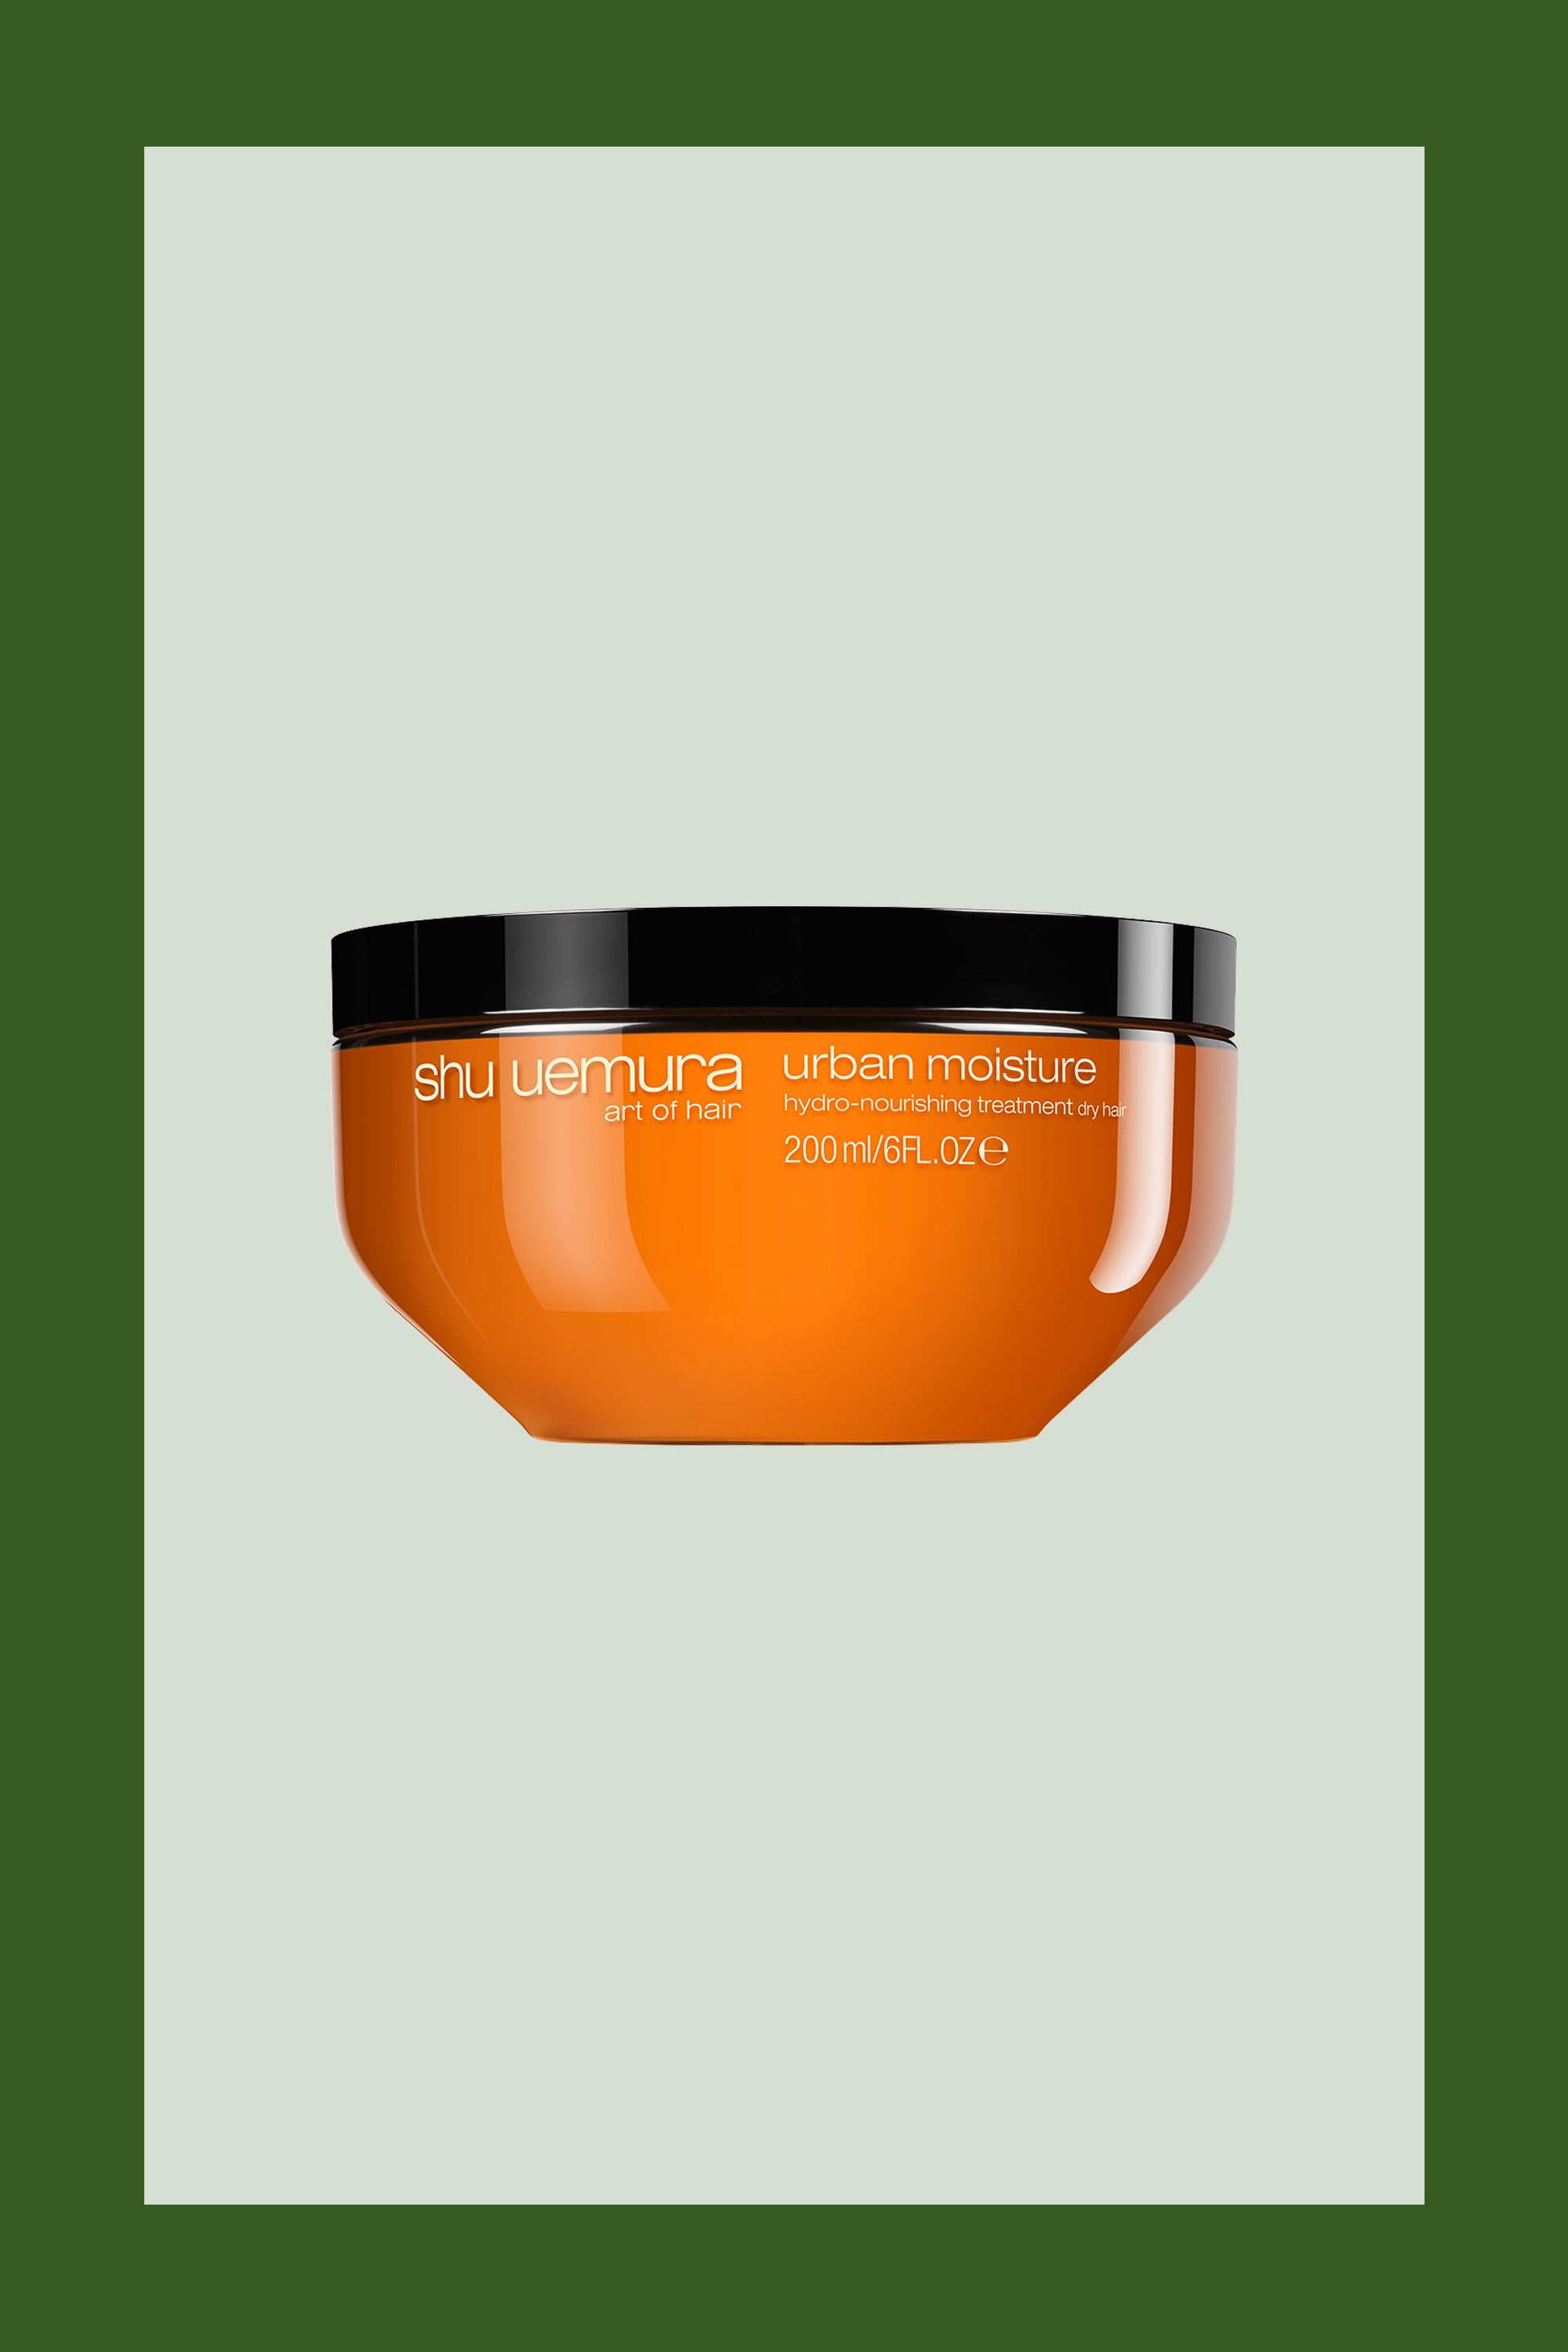 "<p>This mask is sort of like an air filter for your strands, thanks to moringa's  purifying and cleansing abilities. It's incredibly rich, so be warned: It could be a bit too intense for fine-haired-types. If that describes you, leave this one to the normal-to-thick-textured crowd.</p>  <p><em data-redactor-tag=""em"">Shu Uemura Urban Moisture Hydro-Nourishing  Deep Treatment Mask, $68, <a href=""http://www.shuuemuraartofhair-usa.com/urban-moisture-hydro-nourishing-deep-treatment-masque/E1938900.html"" target=""_blank"">shuuemuraartofhair.com</a>. </em></p>"